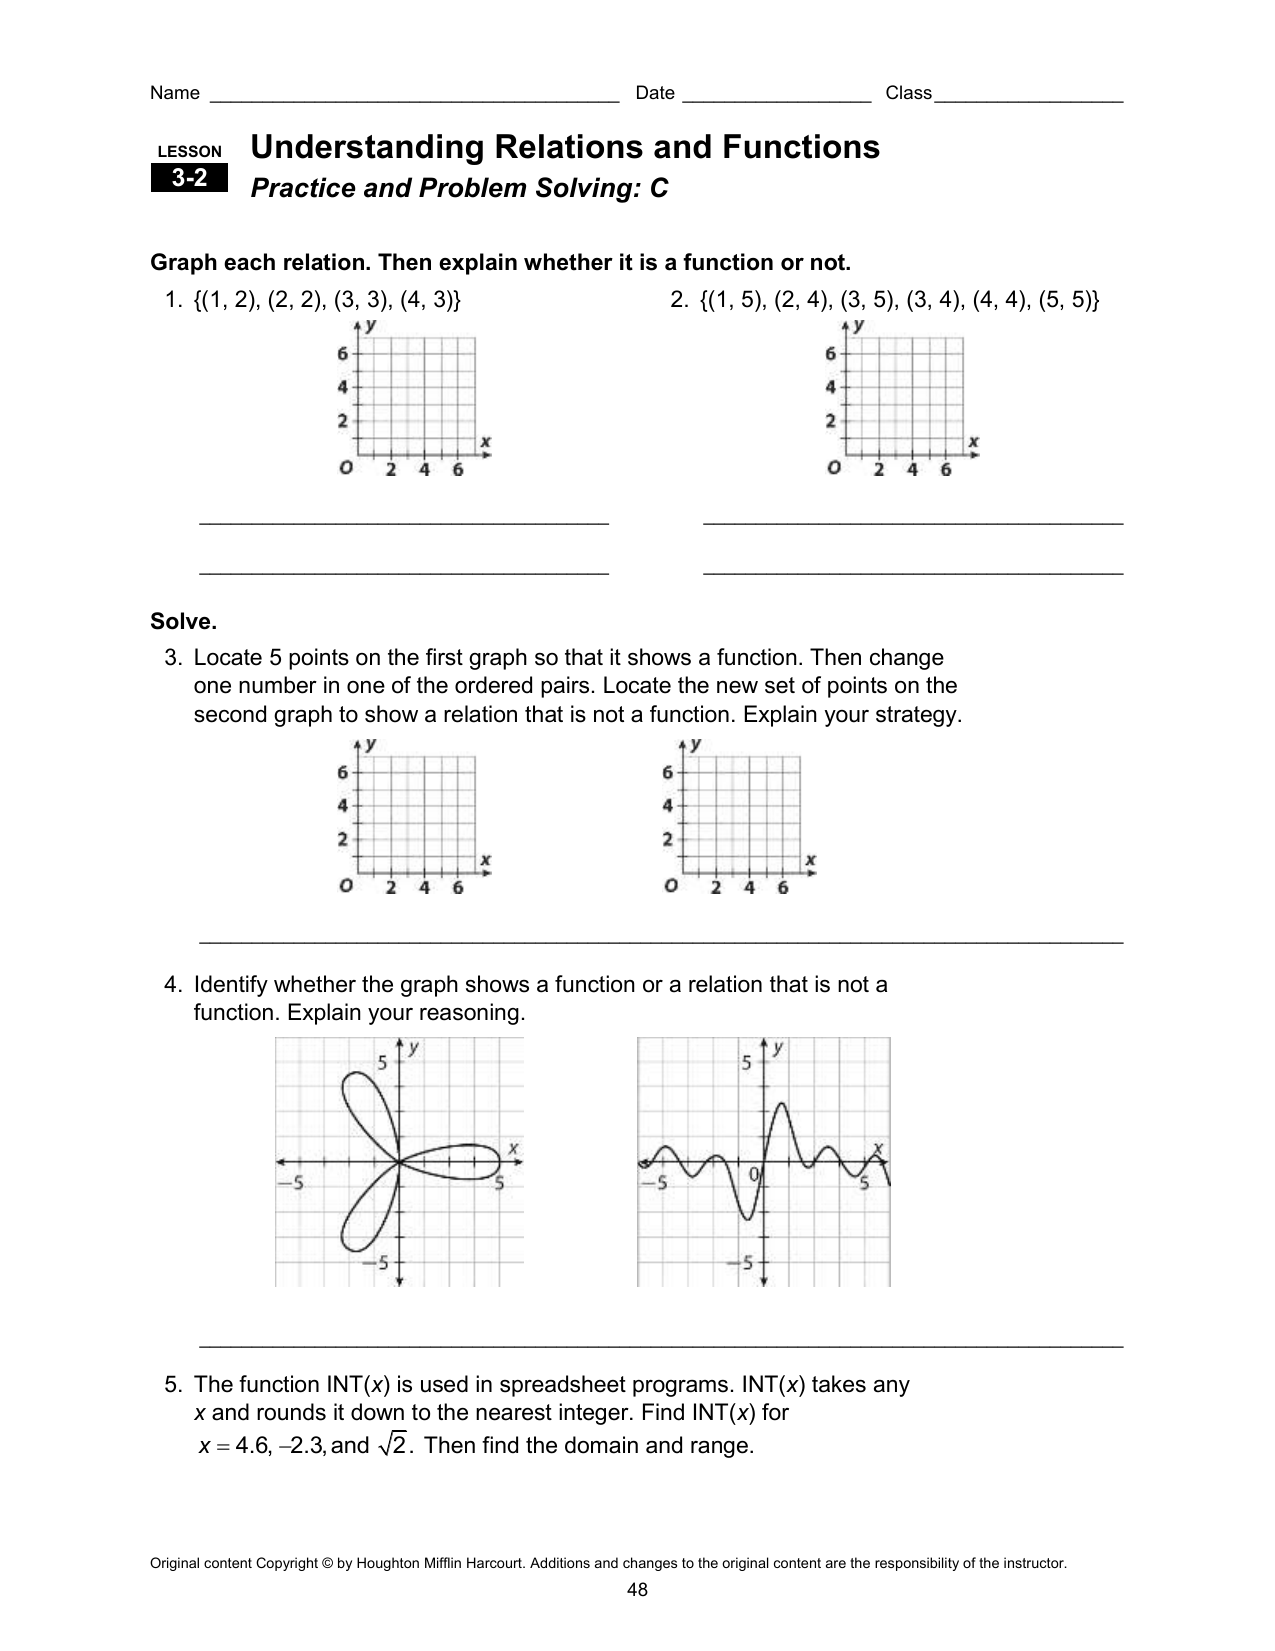 Domain and range worksheet 10 answer key